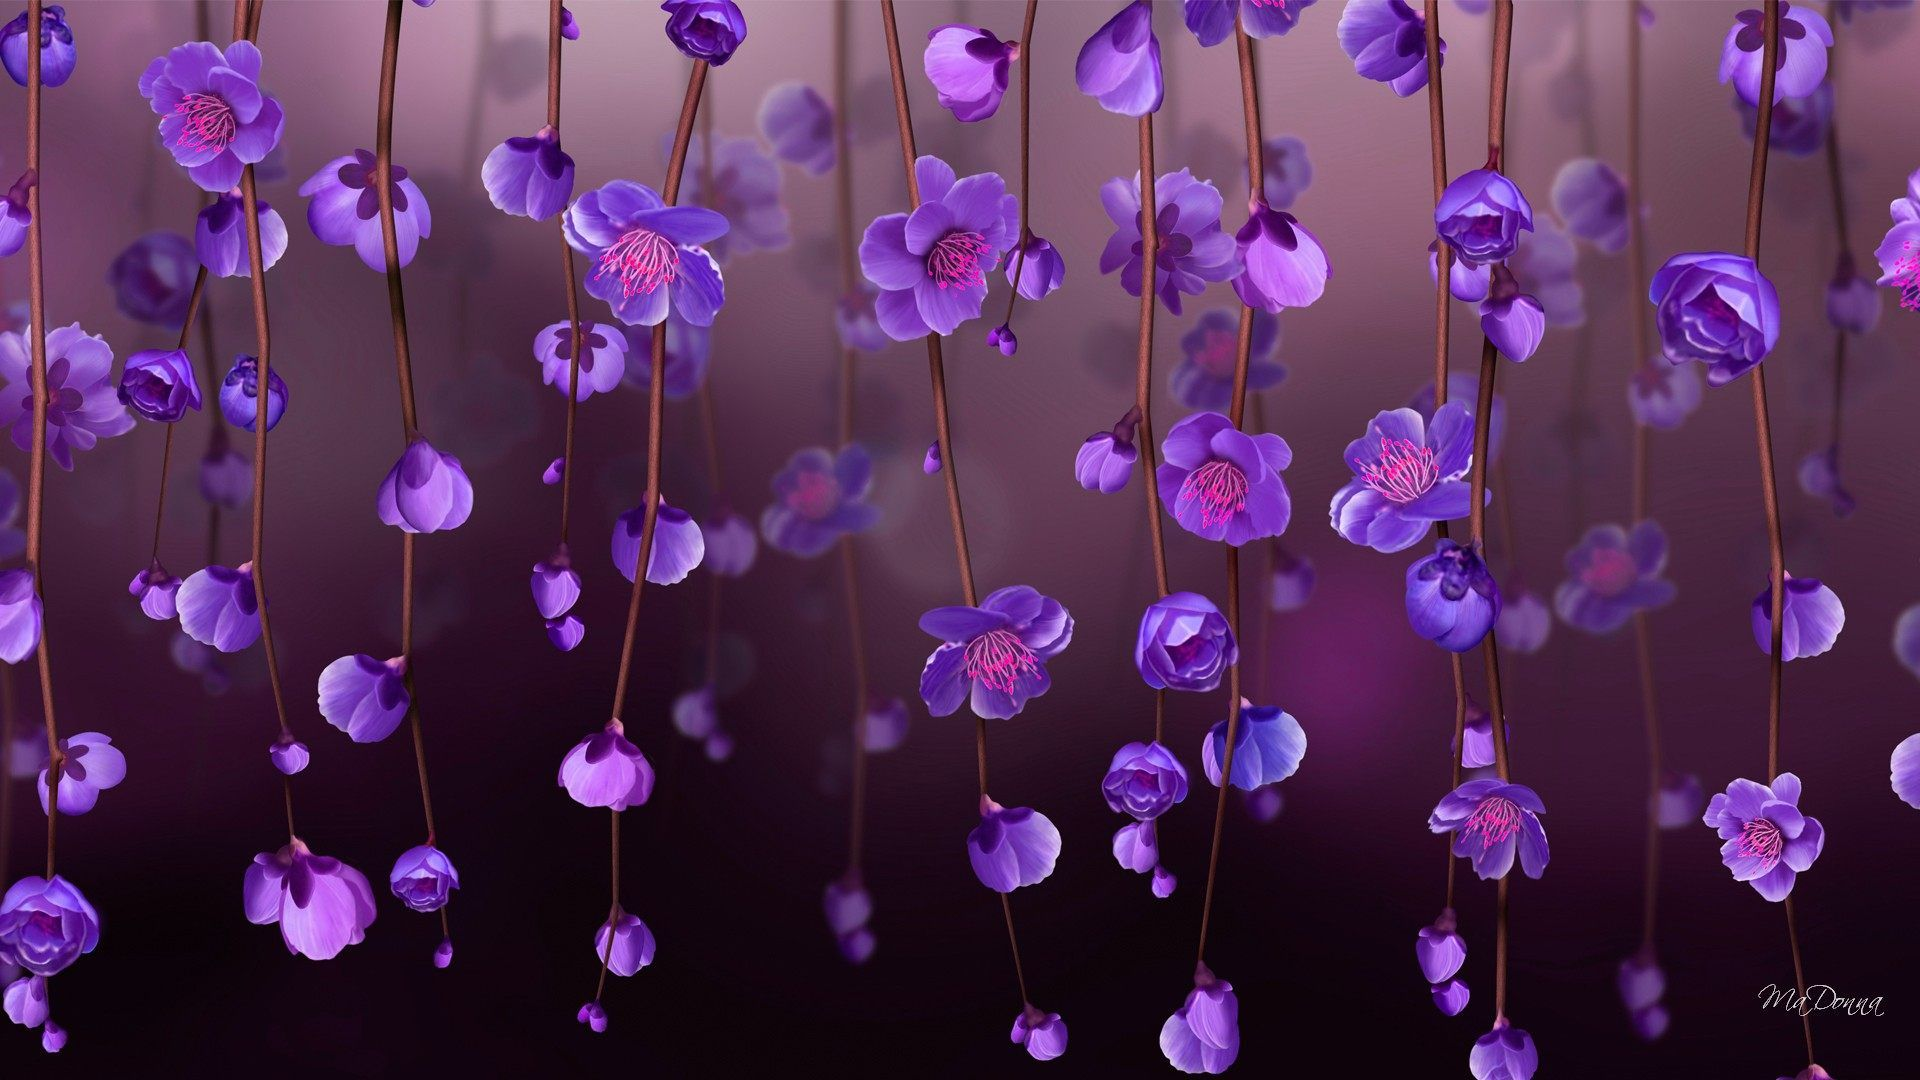 Beautiful Purple Flower Wallpapers High Quality On High Resolution Wallpaper Paarse Bloemen Paarse Achtergronden Paars